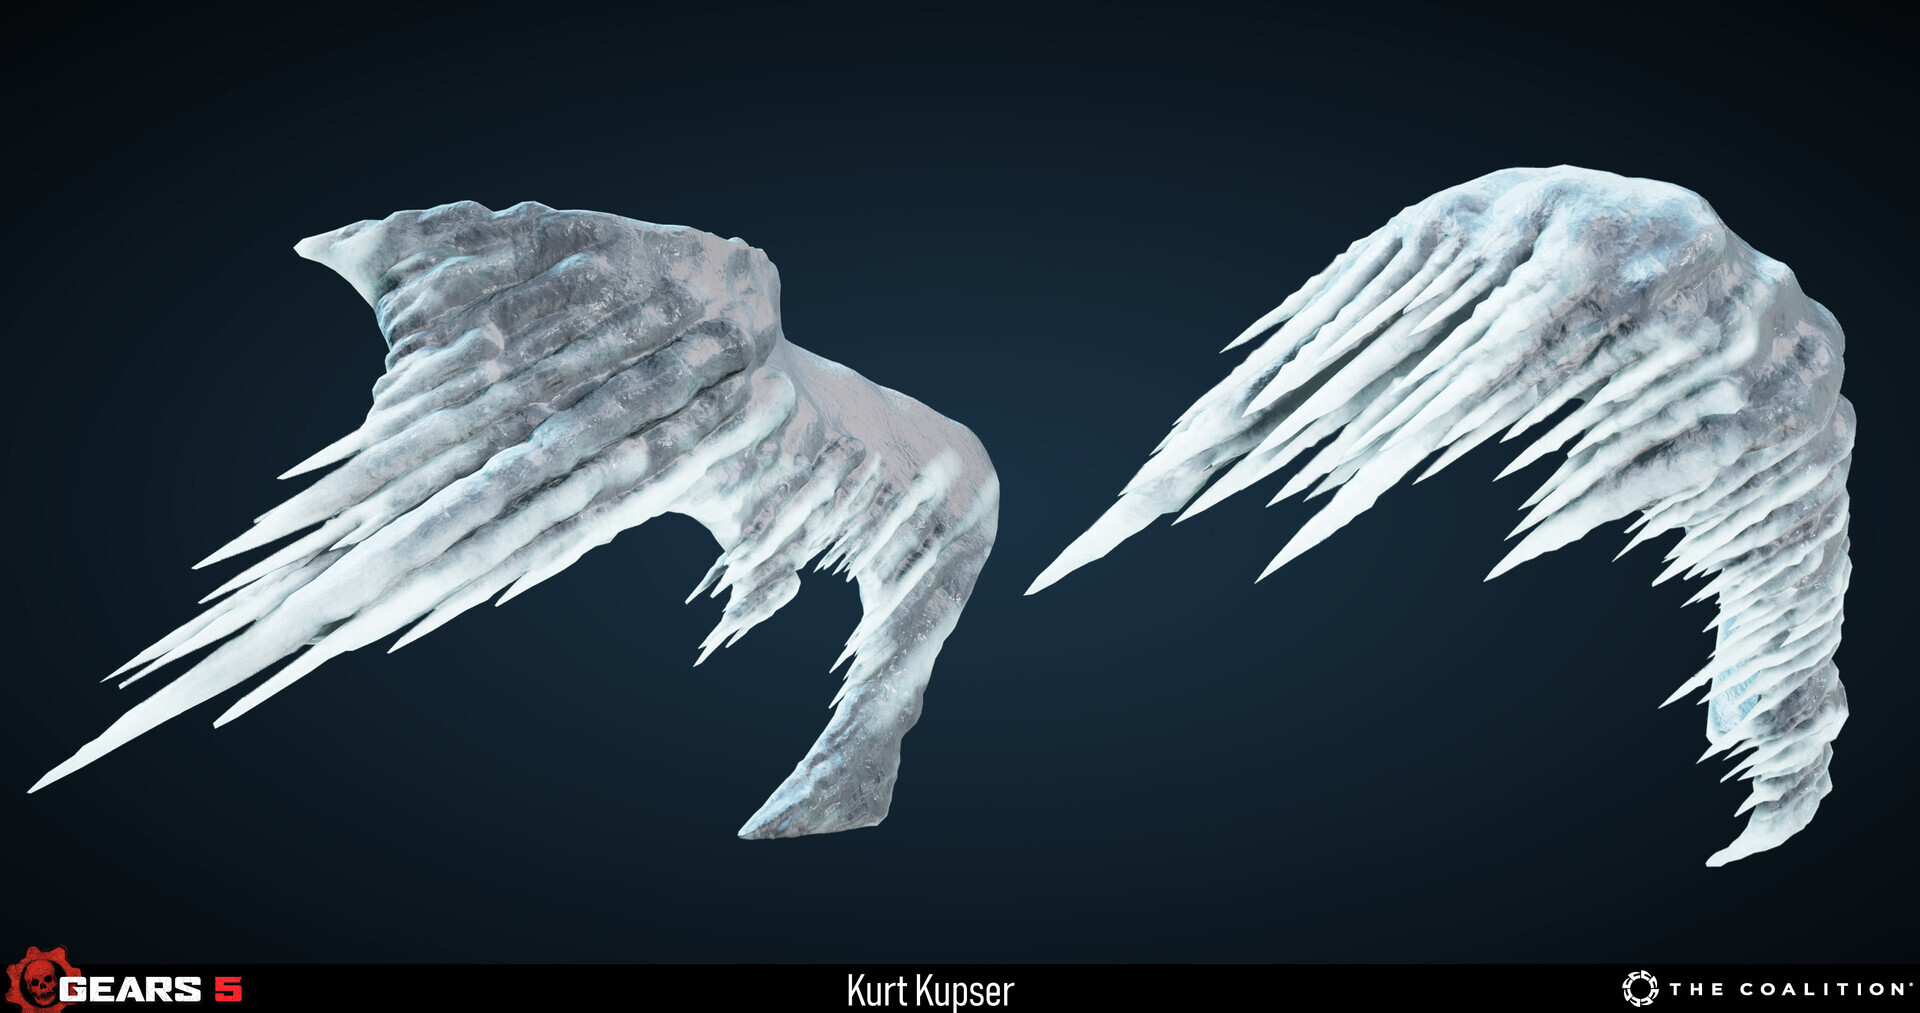 Example of the advection ice assets applied to some assets. Models and texturing by Cat Yang https://www.artstation.com/goodbyekitty137